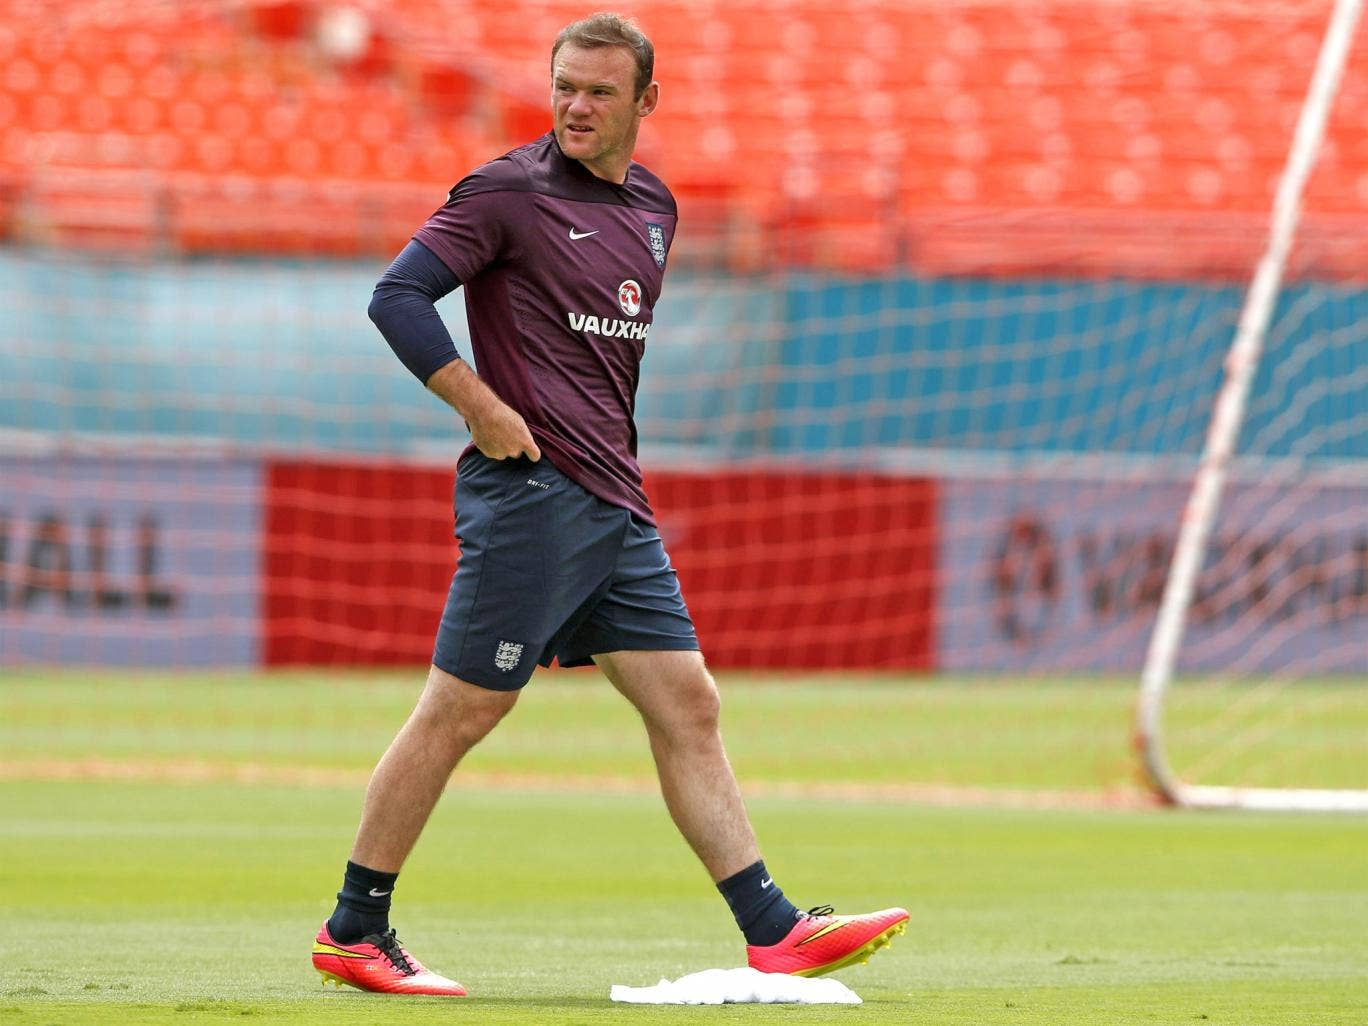 Wayne Rooney made his England debut over 11 years ago and is used to being the side's focal point